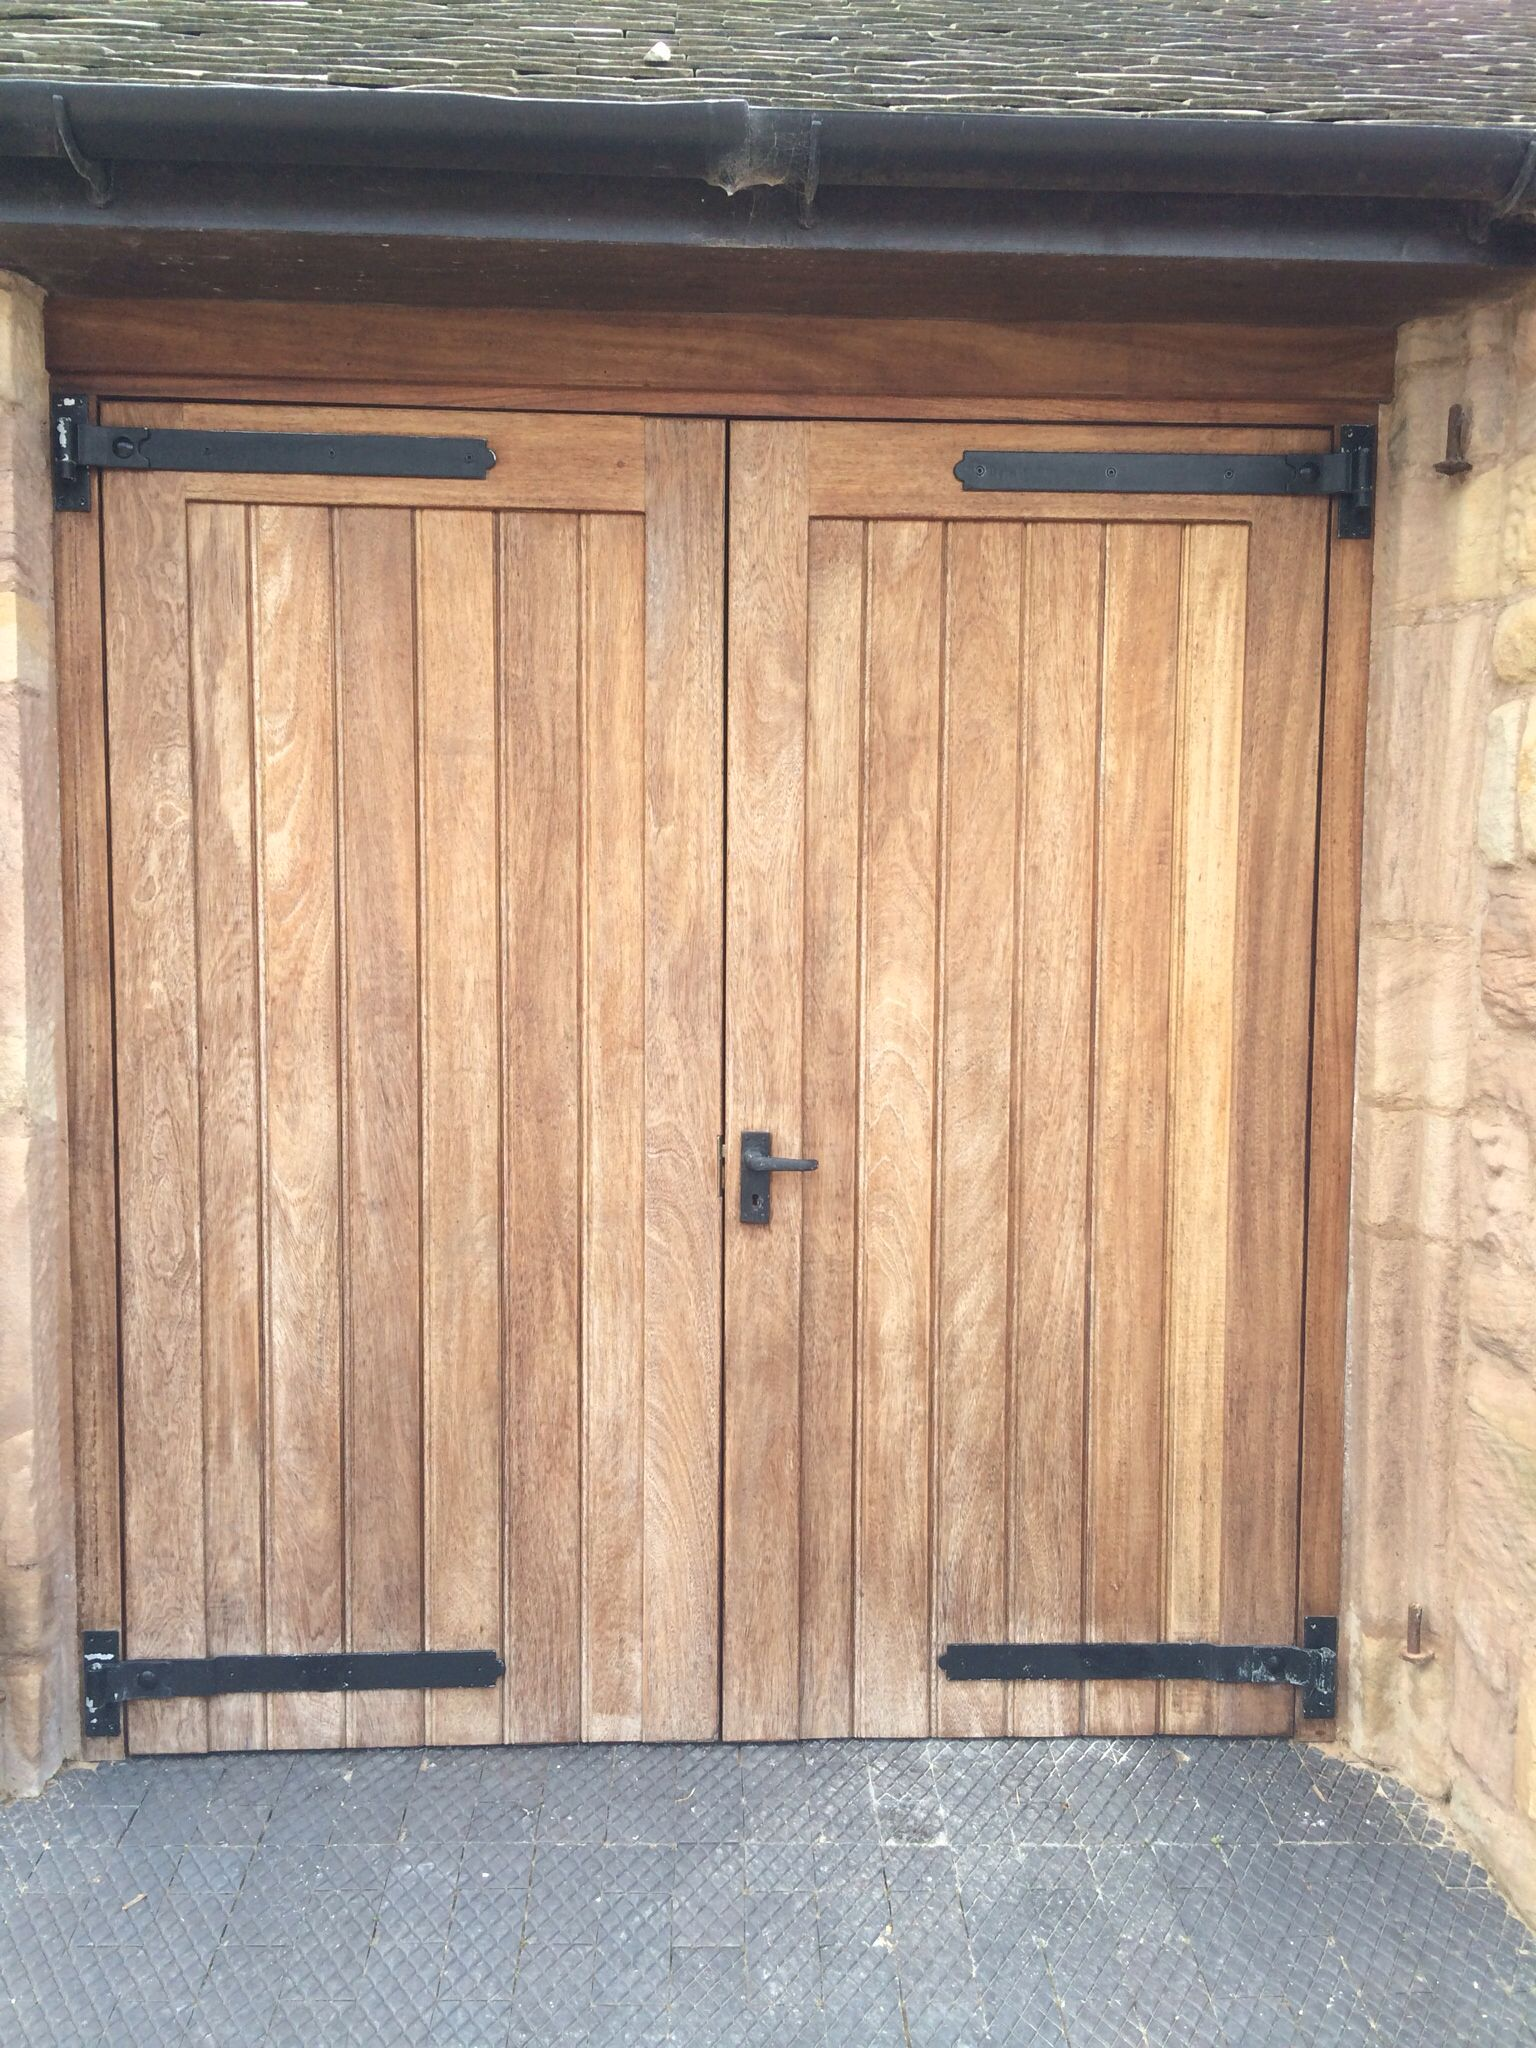 Garage Doors Knoxville Iroko Garage Doors After A Few Years Of Weathering Looks